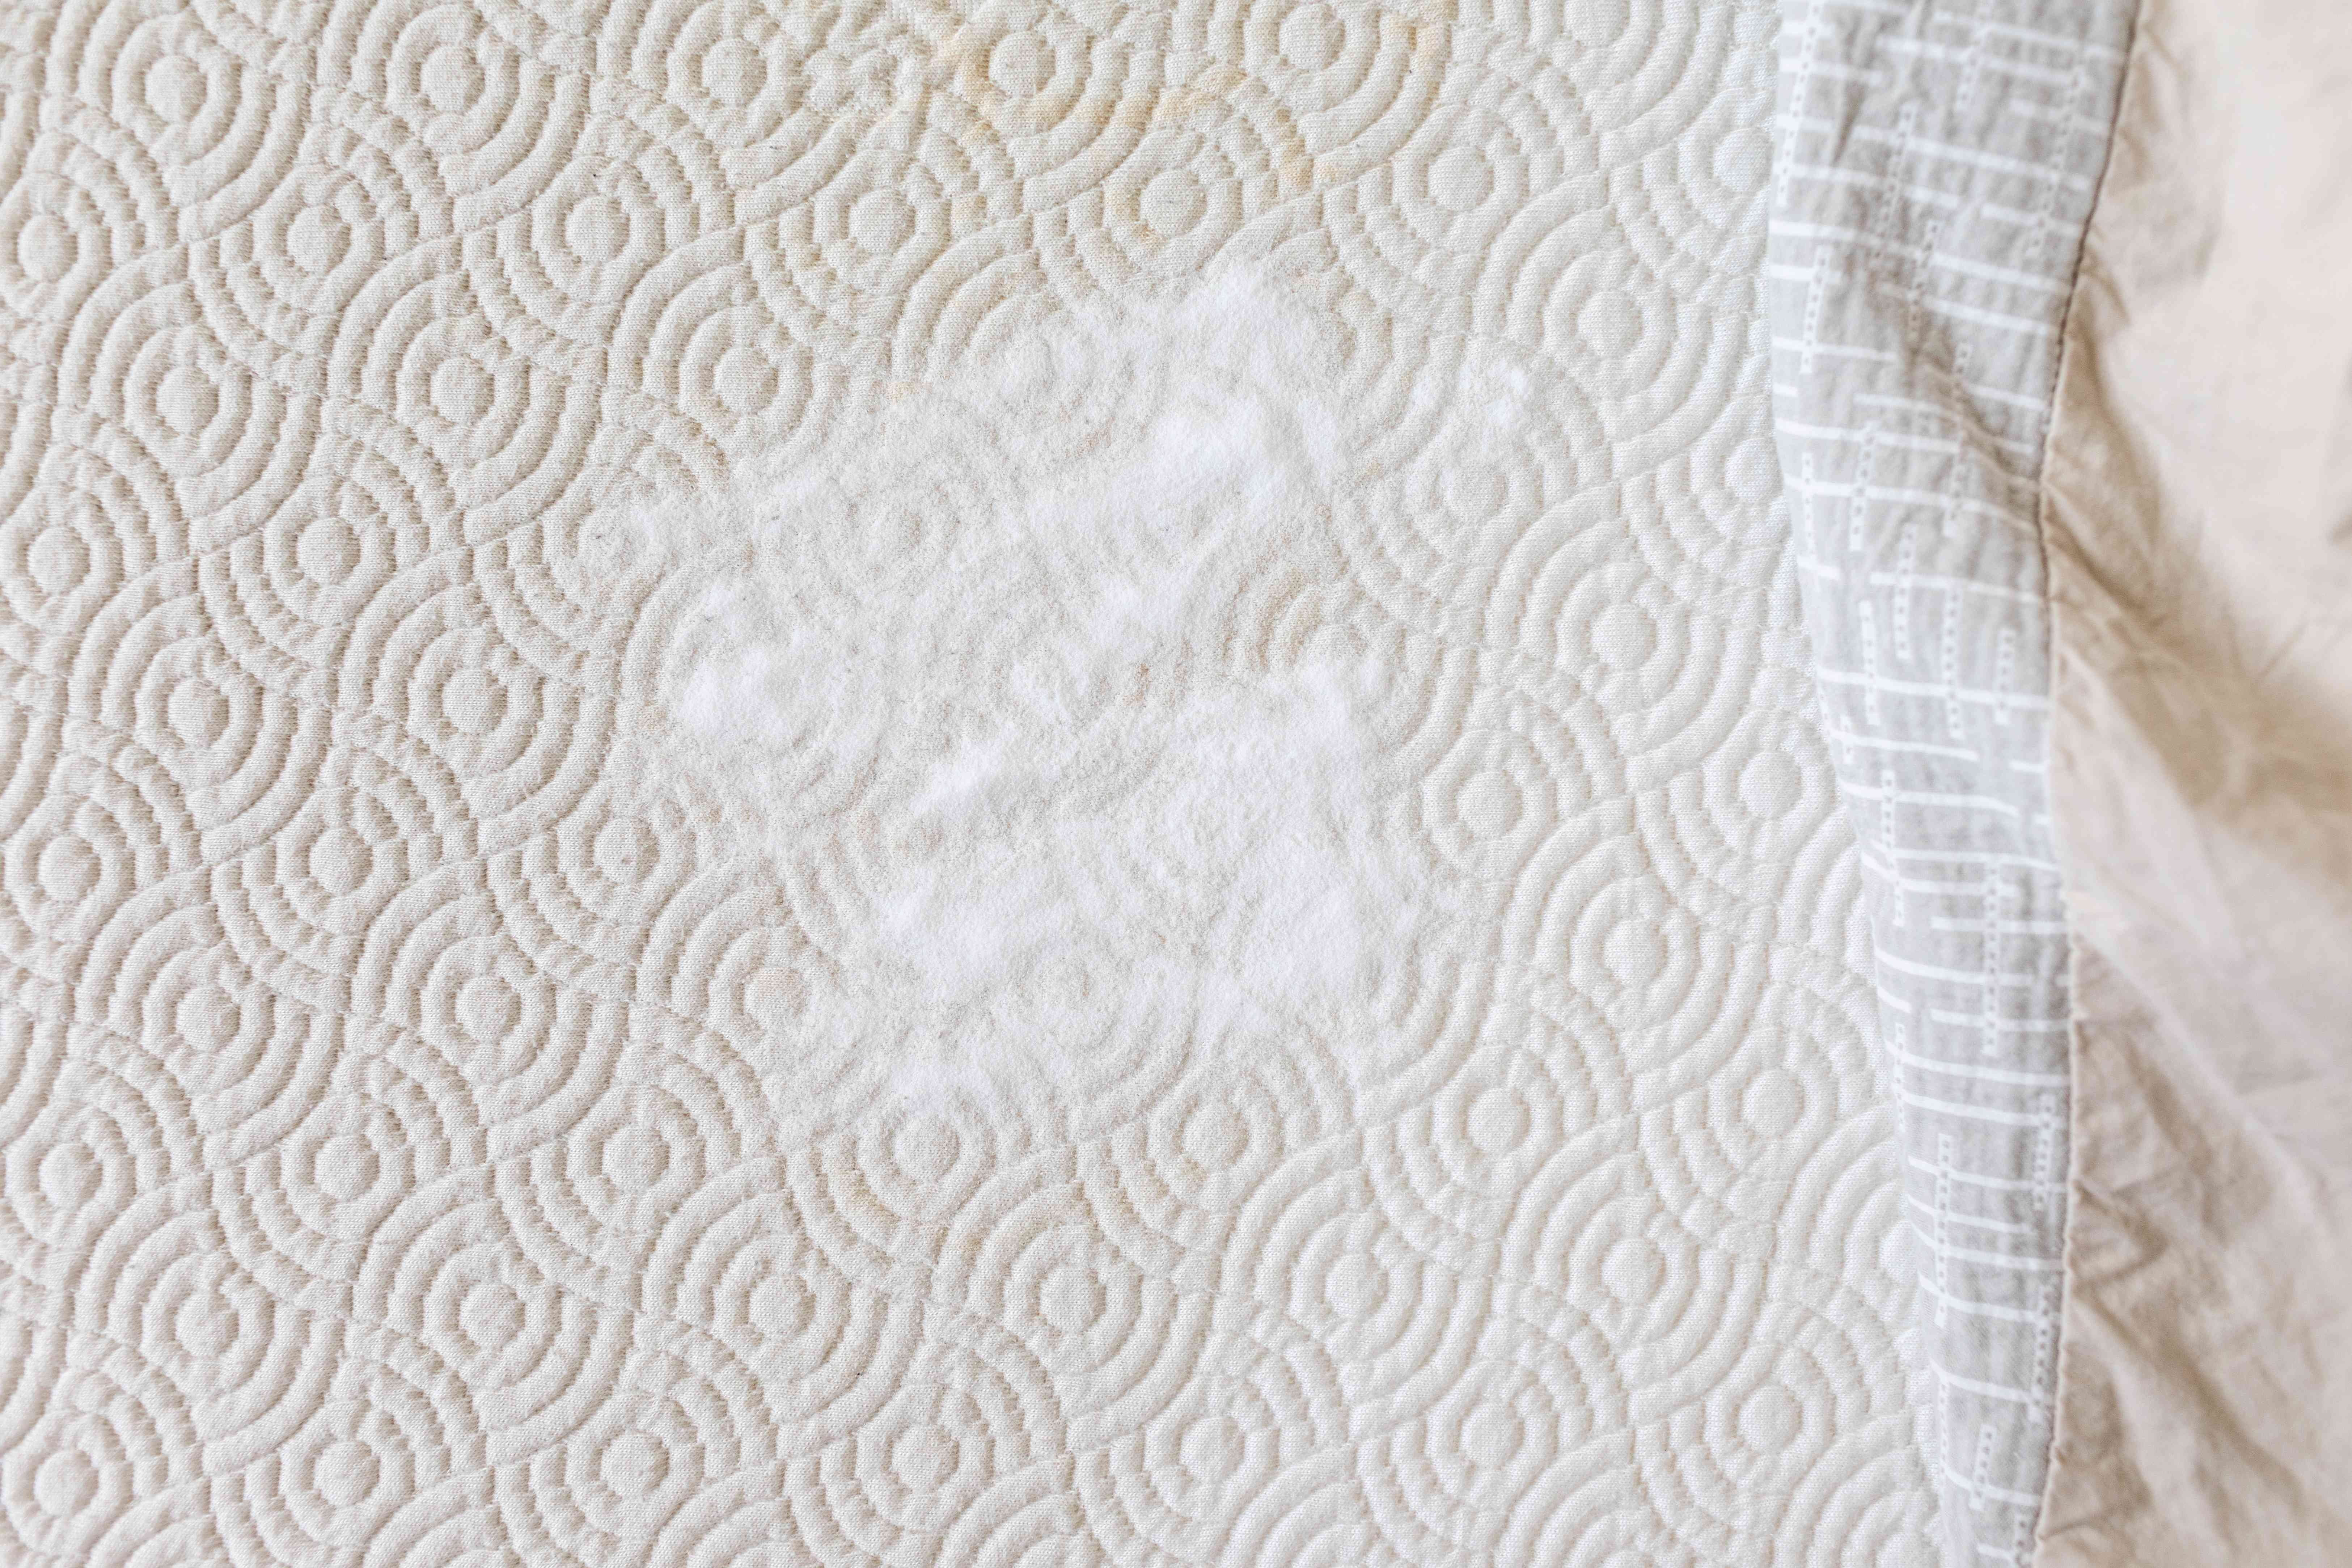 pile of spread-out baking soda on bare mattress with top sheet pulled away